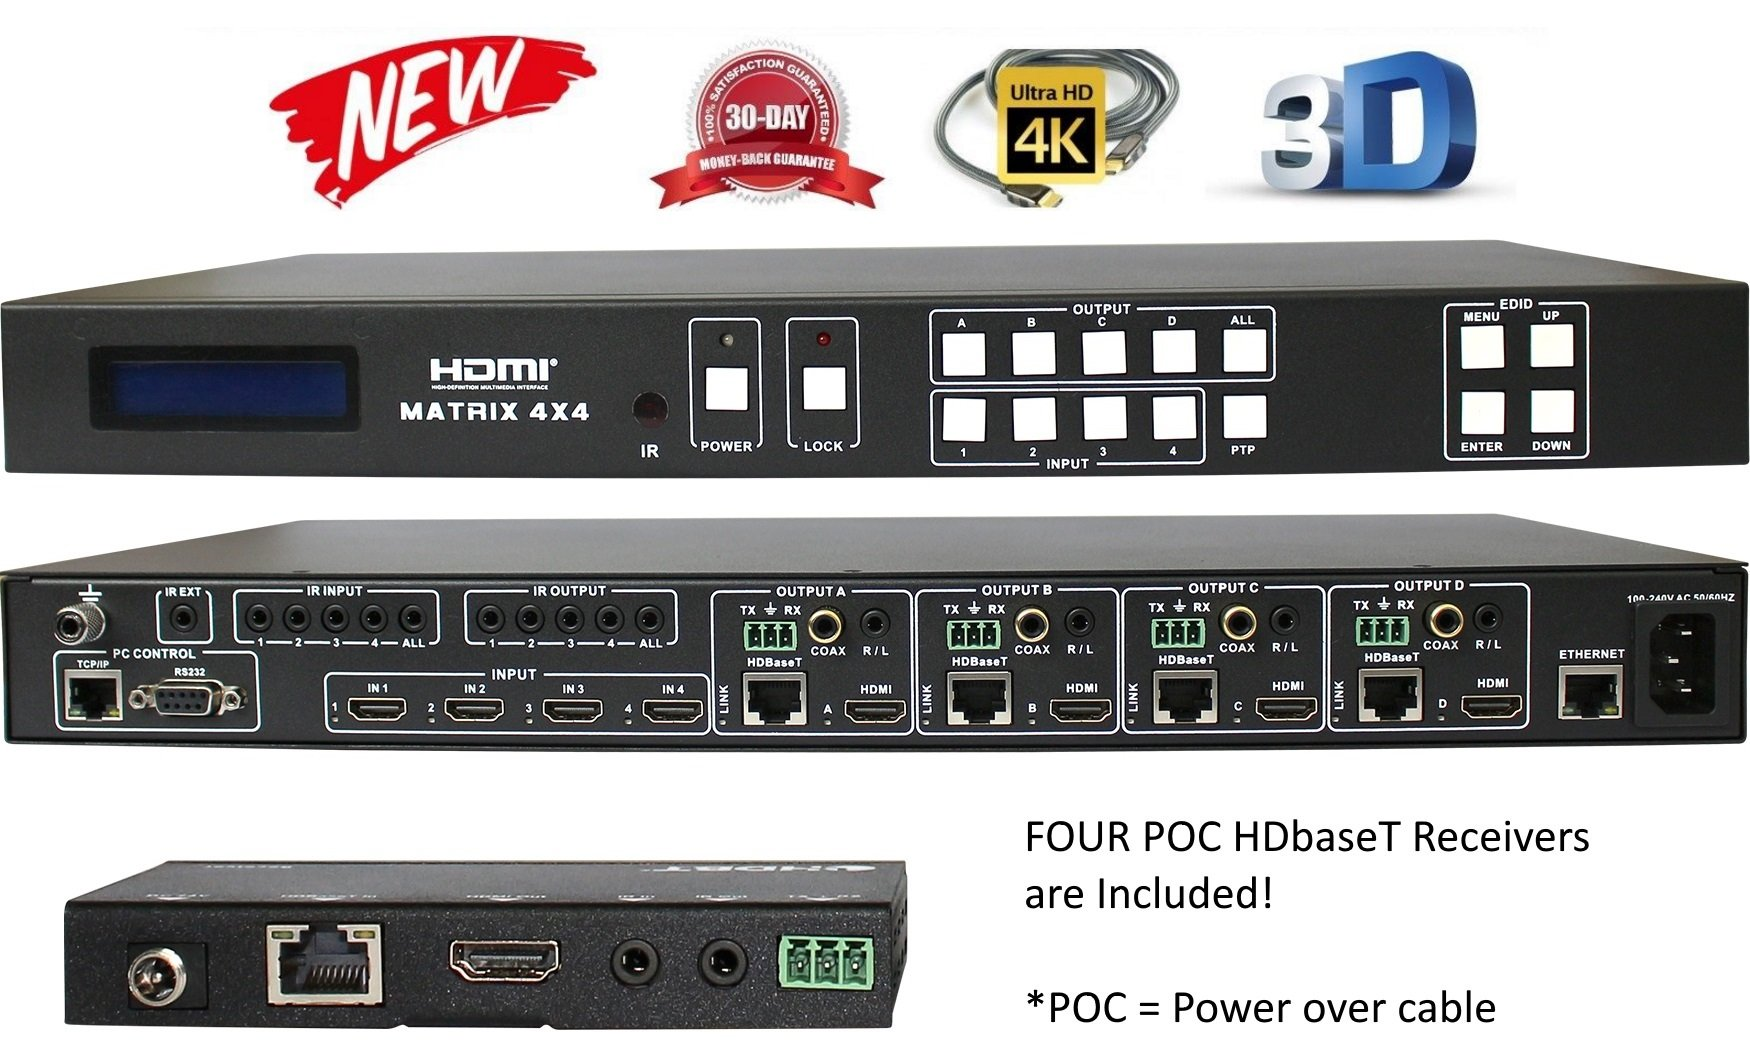 4x8 4x4 HDbaseT 4K HDMI MATRIX SWITCHER w/ FOUR PoC RECEIVERS (CAT5e or CAT6). HDCP2.2 HDTV ROUTING SELECTOR SPDIF AUDIO CRESTRON CONTROL4 SAVANT HOME AUTOMATION